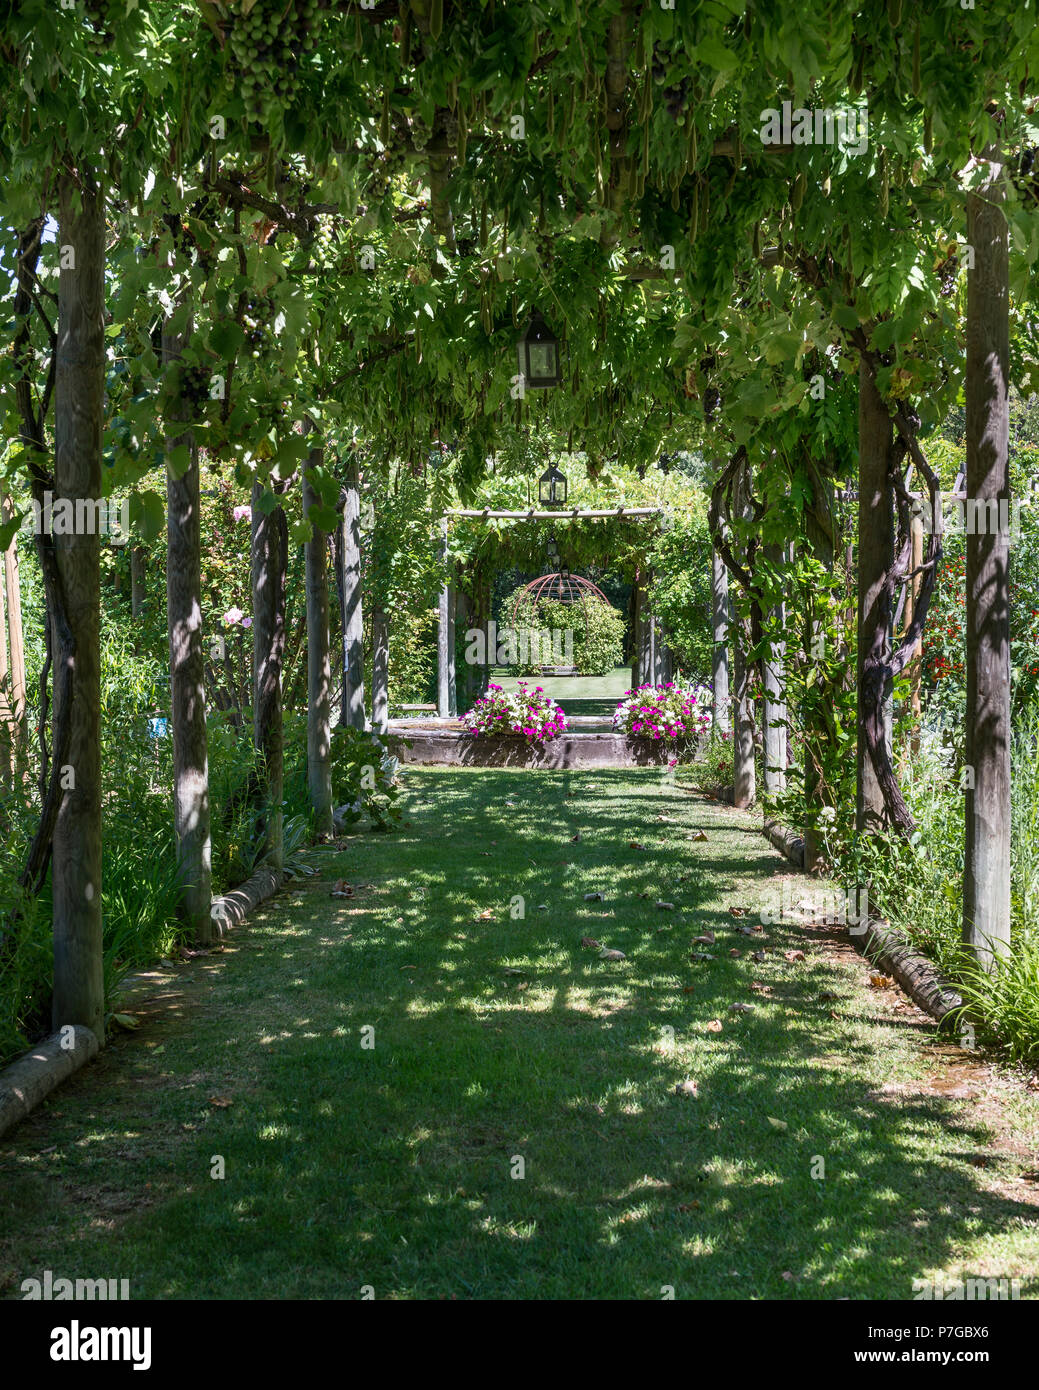 St Remy Shaded Pergola In Garden Grounds Of 18th Century Chateaux In St